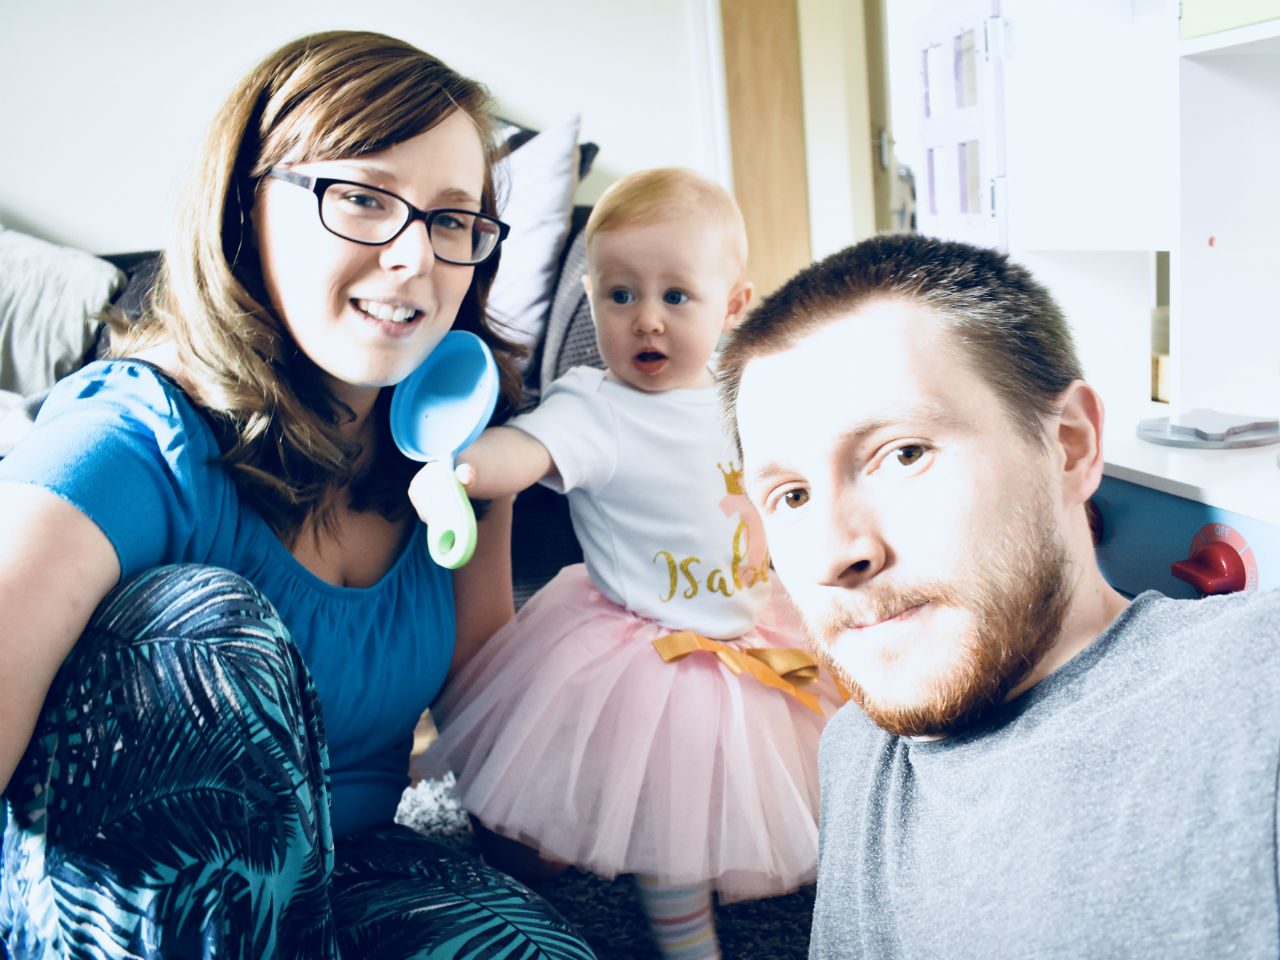 When I became a dad, I felt nothing—then I realized it was